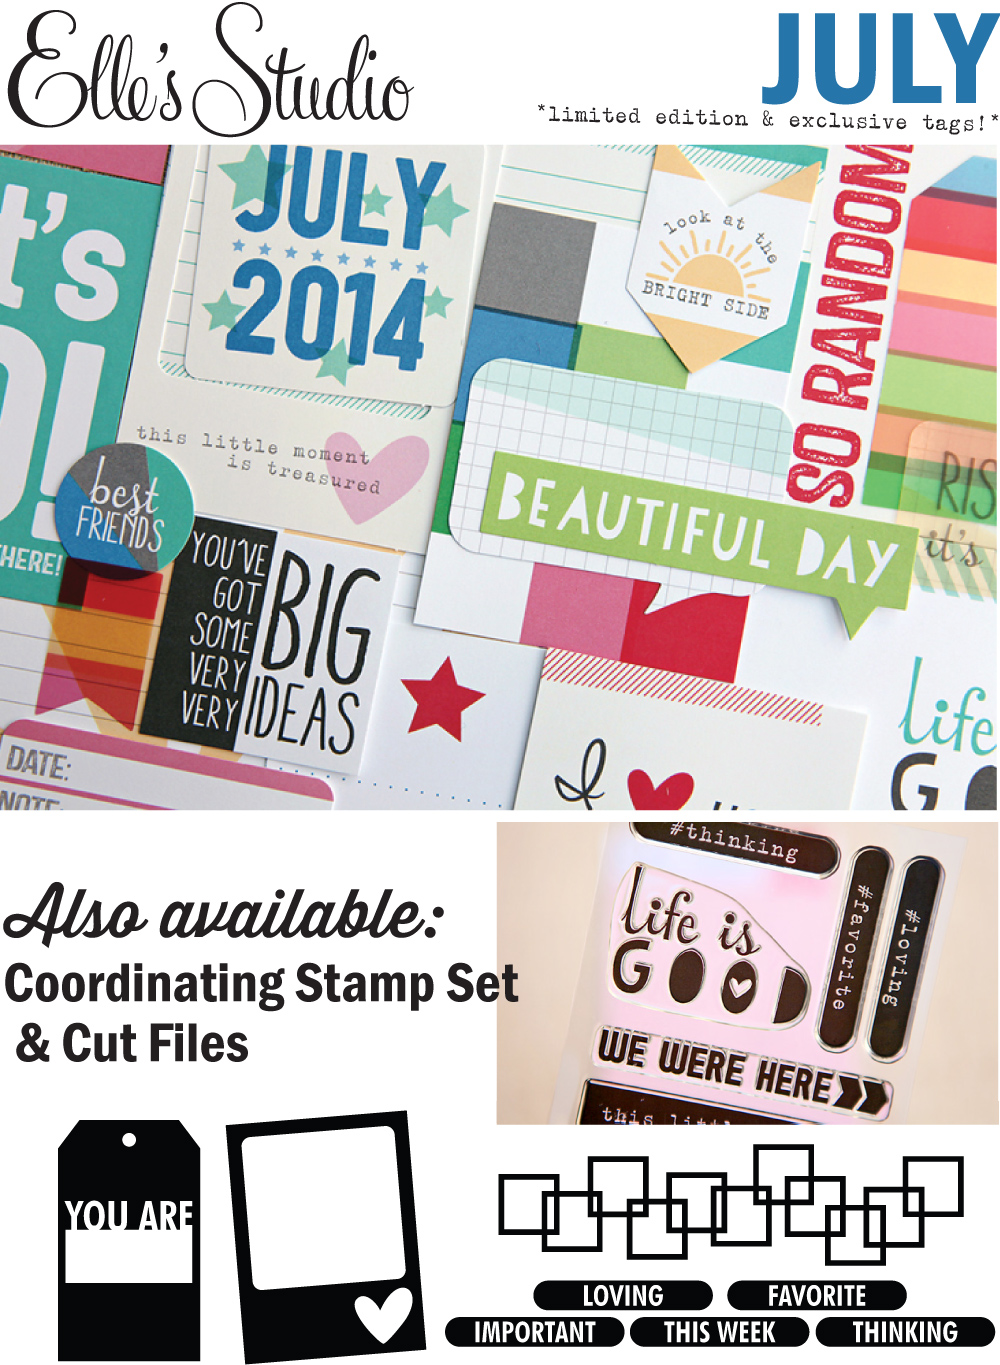 Elle's Studio July 2014 Limited Edition and Exclusive Kit